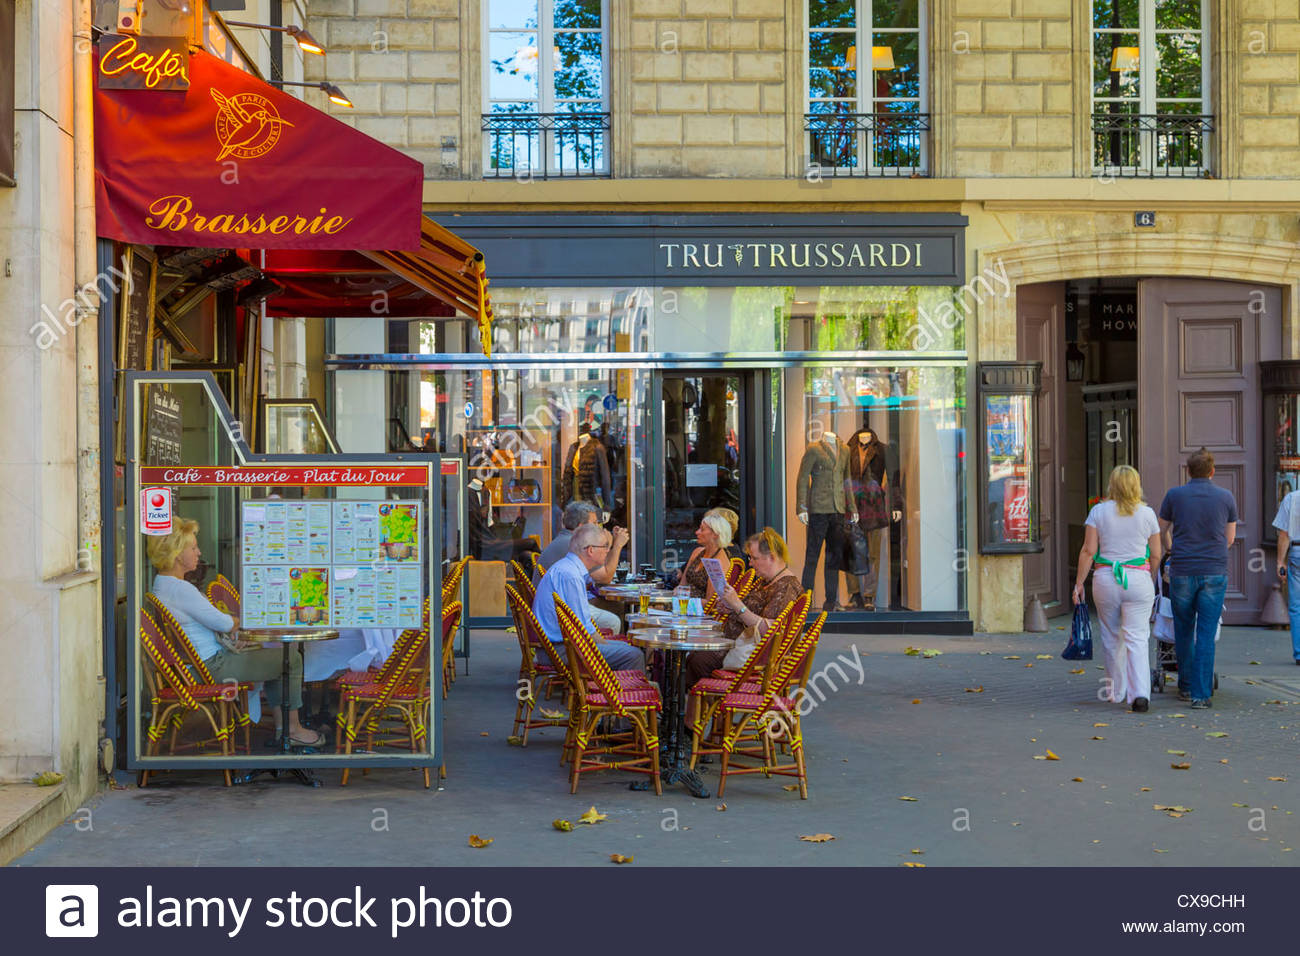 Cafe in the vieux port terra vecchia bastia corsica france stock - Street Cafe Near Place De La Concorde In Paris France Stock Image